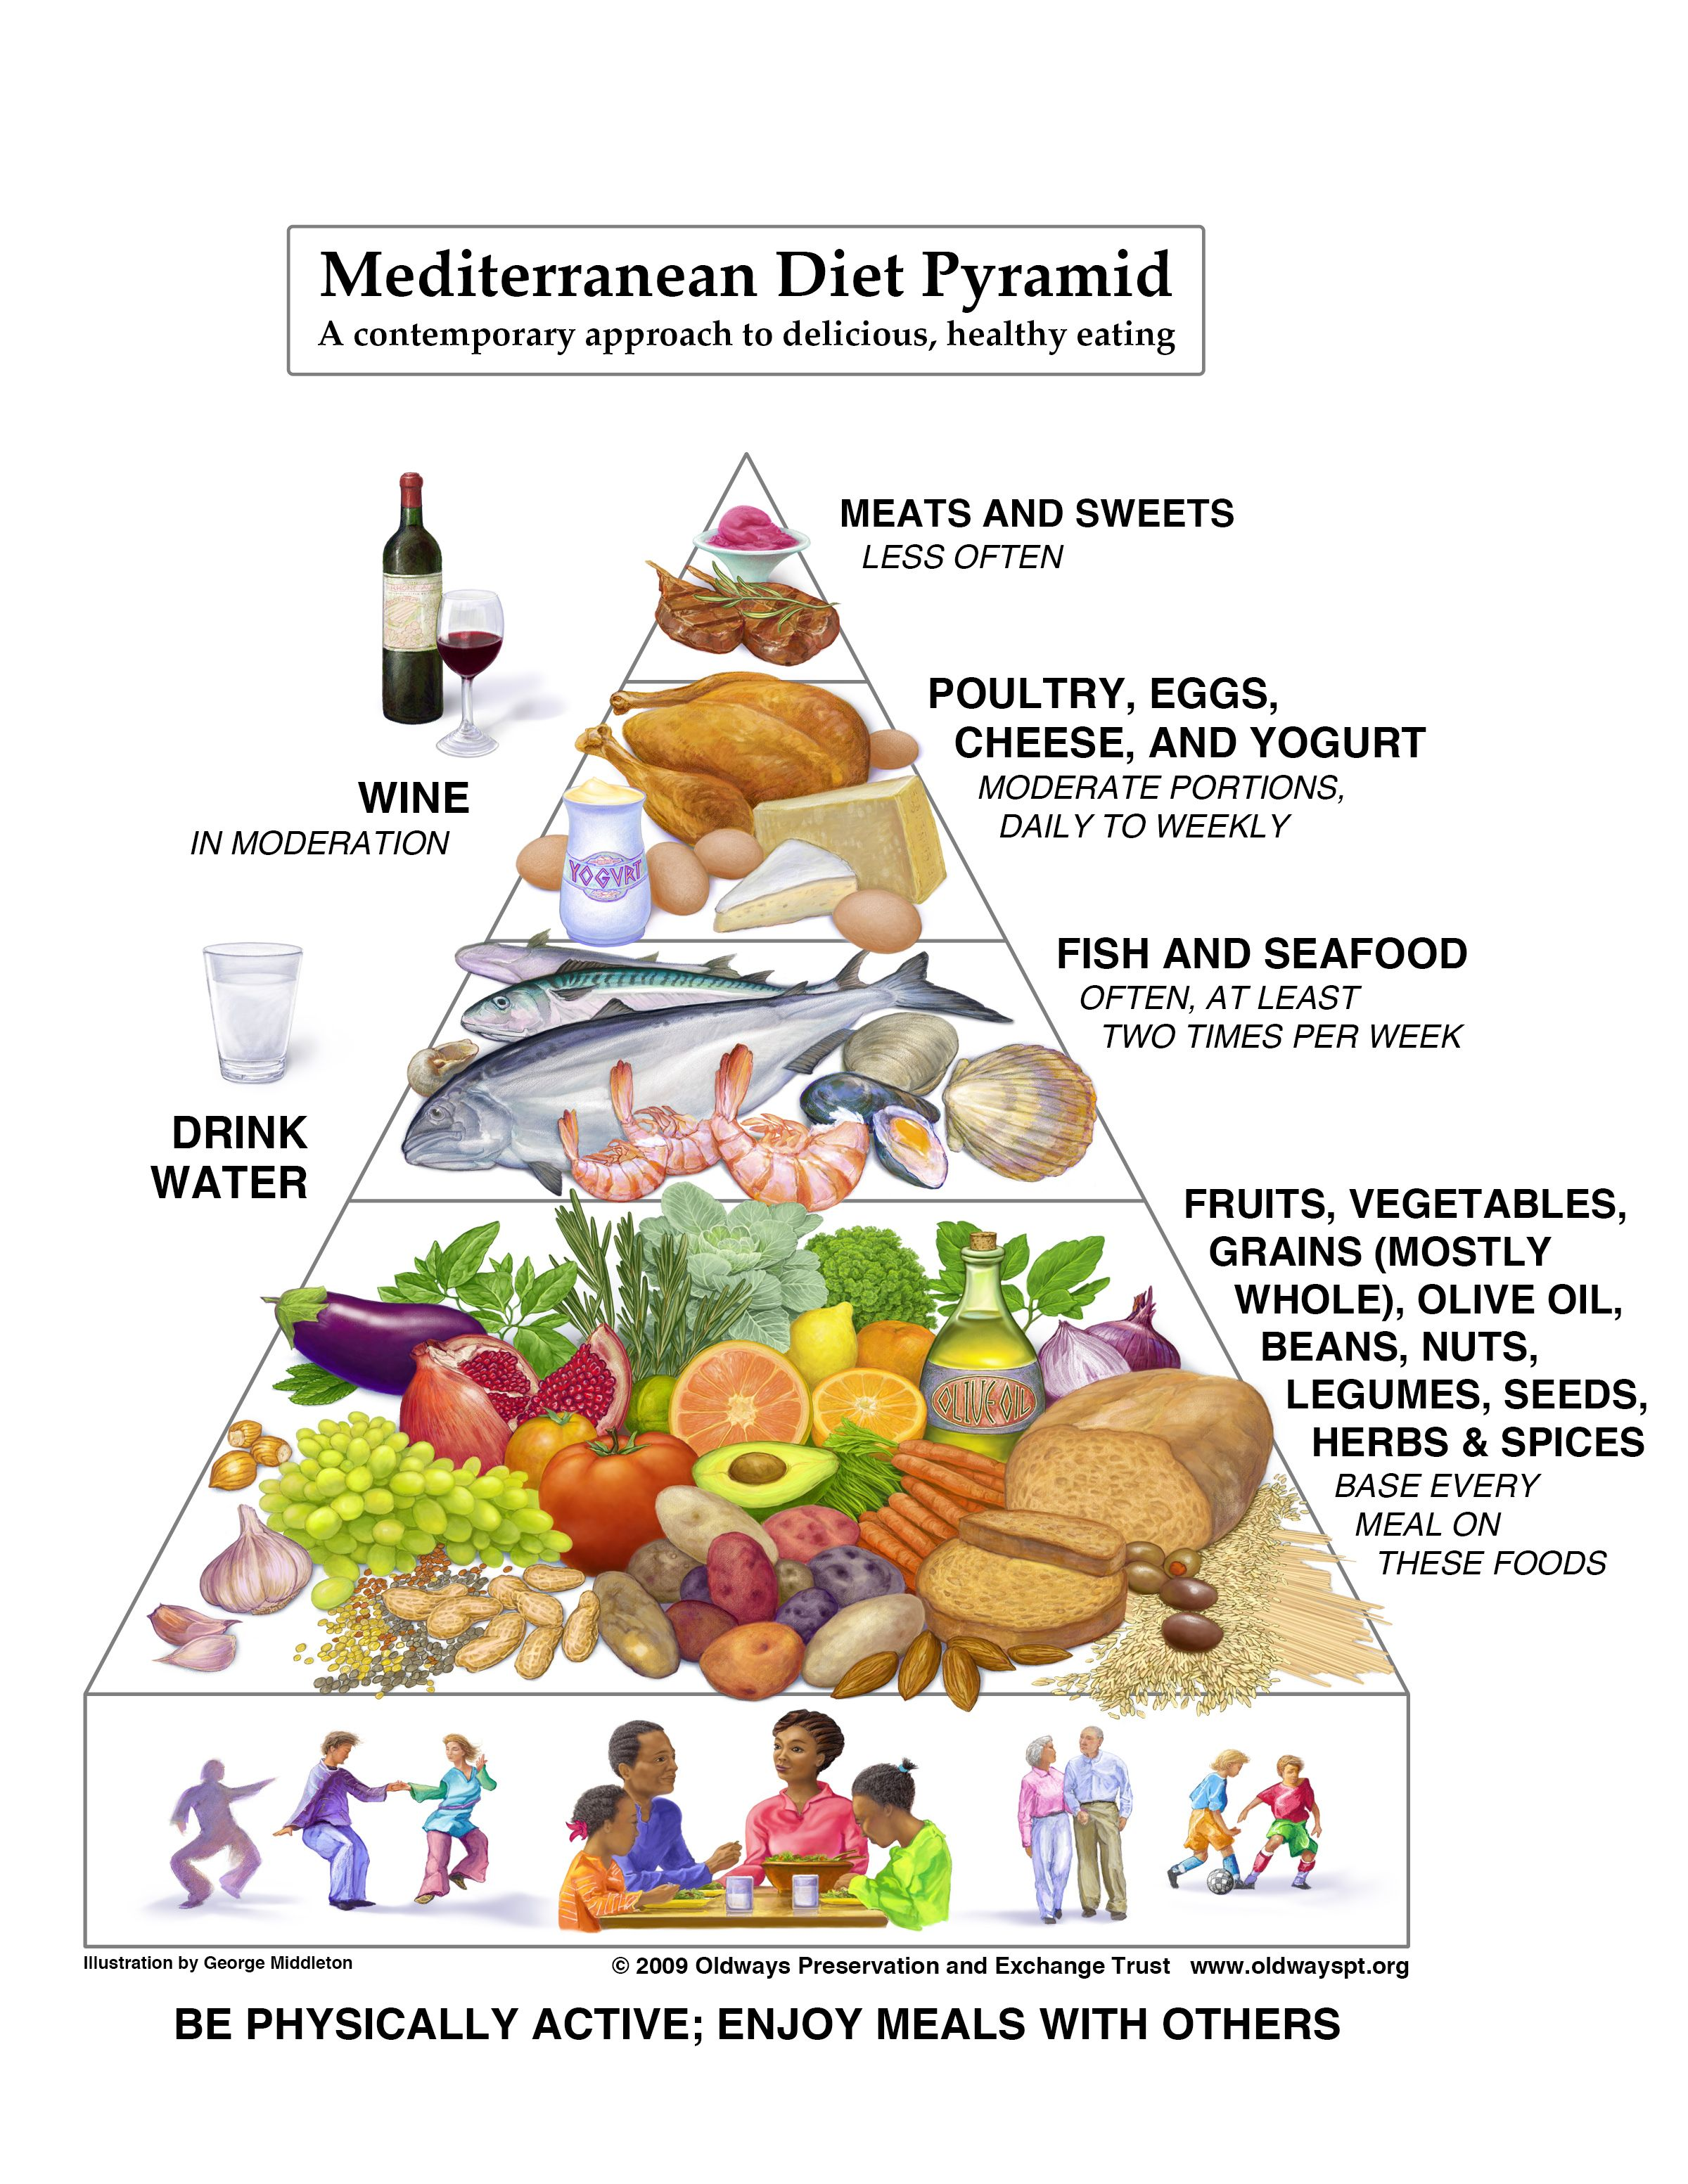 nutrition and cultural aspects of the mediterranean diet